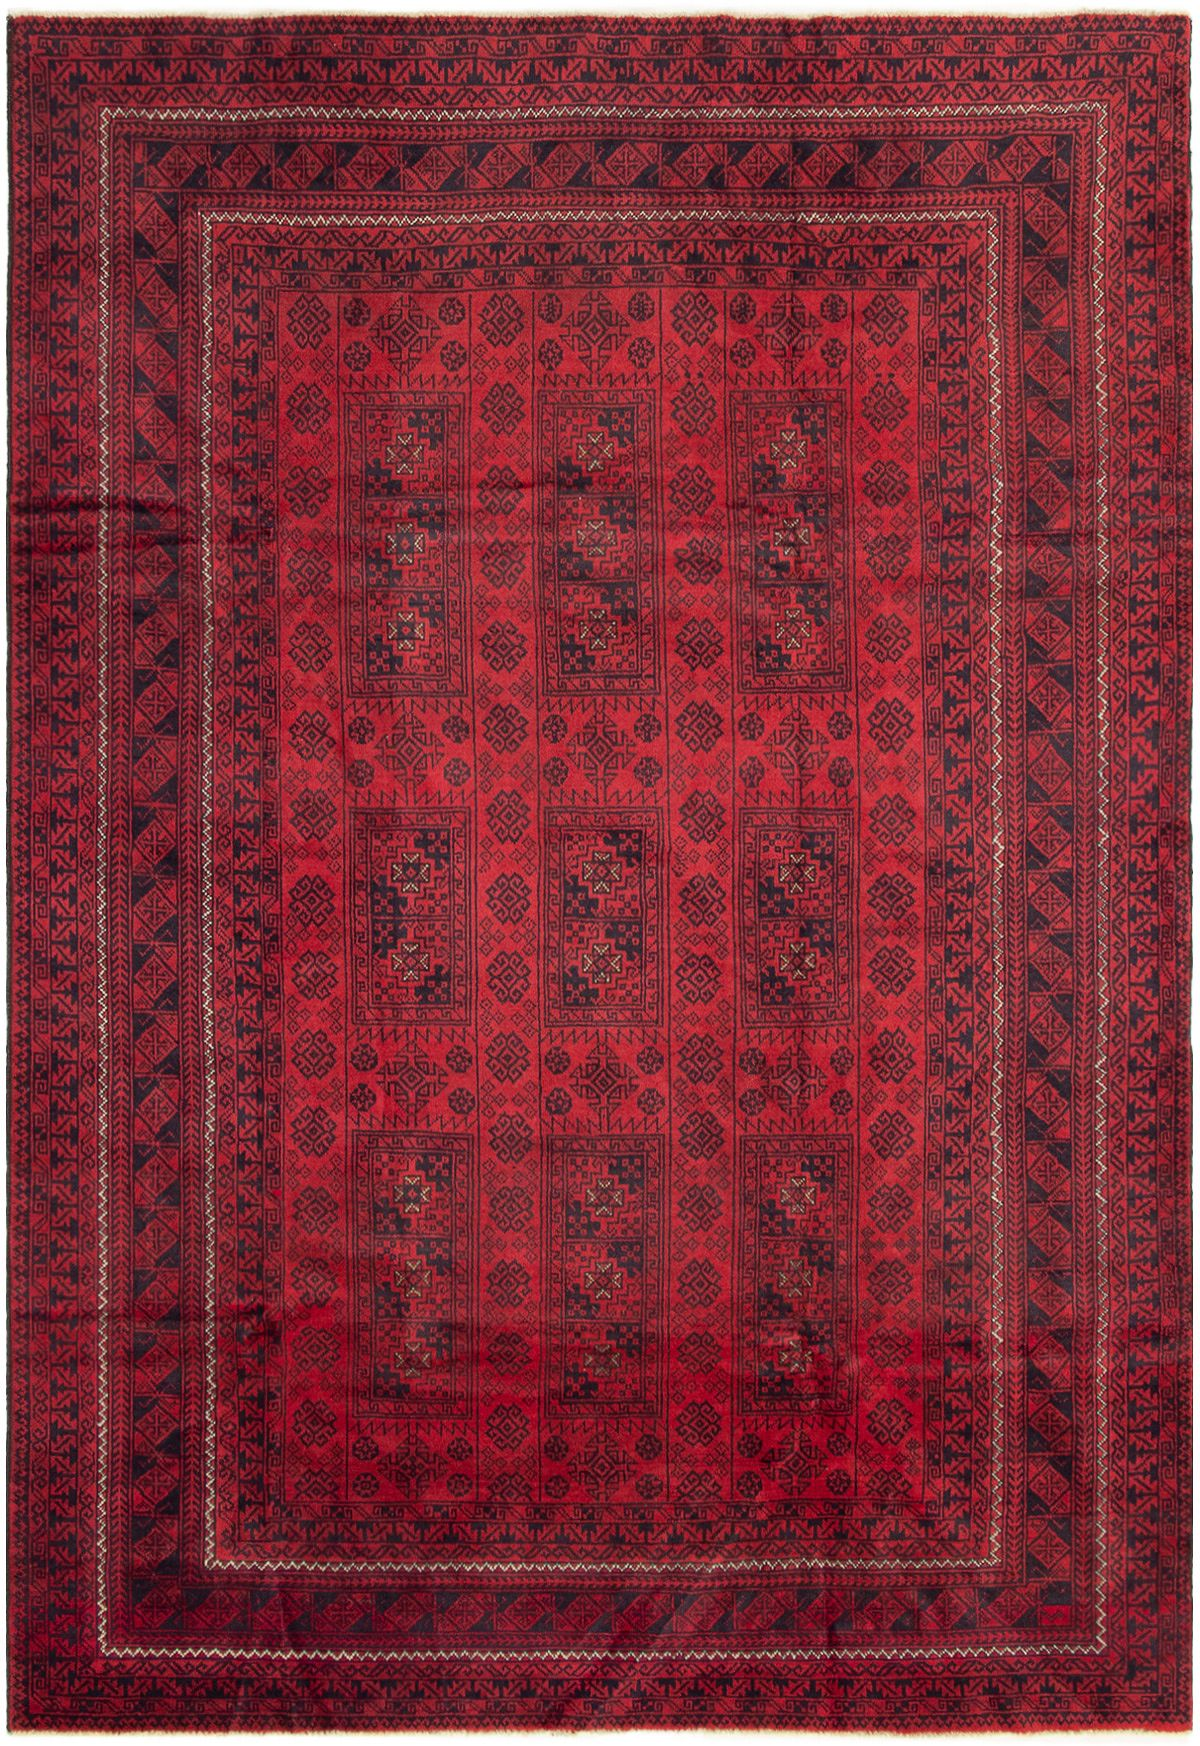 "Hand-knotted Finest Rizbaft Red Wool Rug 6'9"" x 10'0""  Size: 6'9"" x 10'0"""